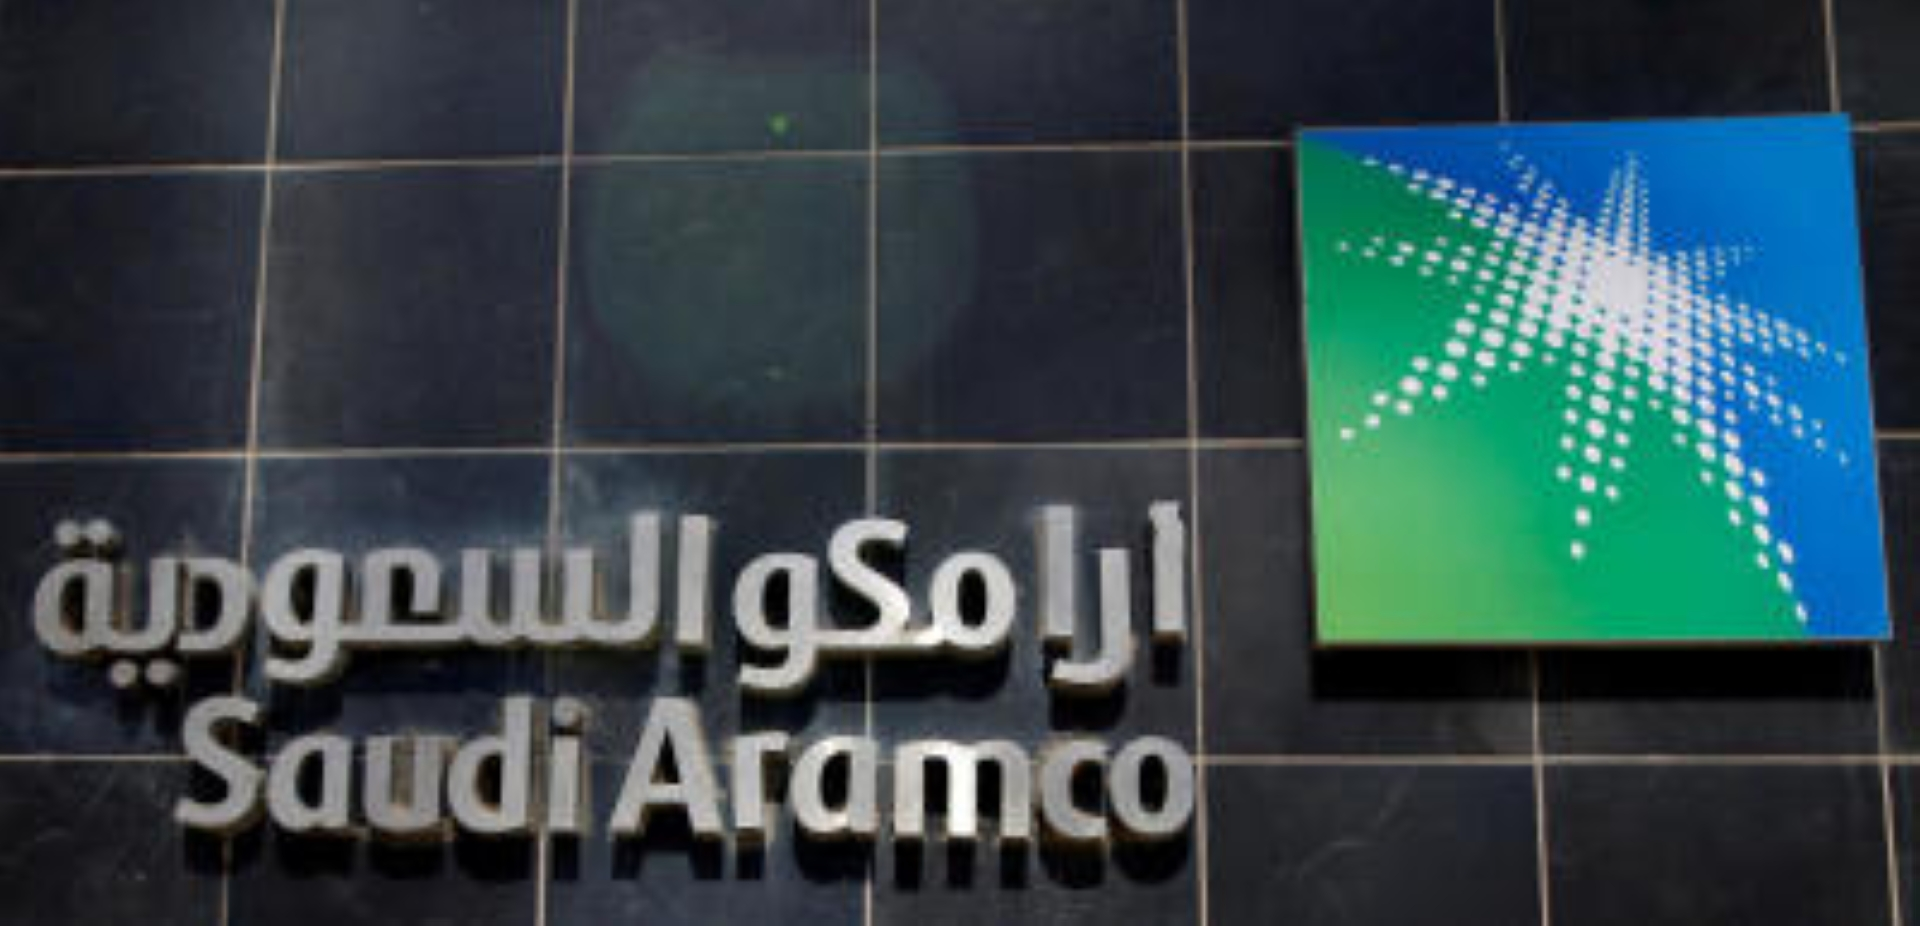 Saudi Aramco is the WeWork of energy